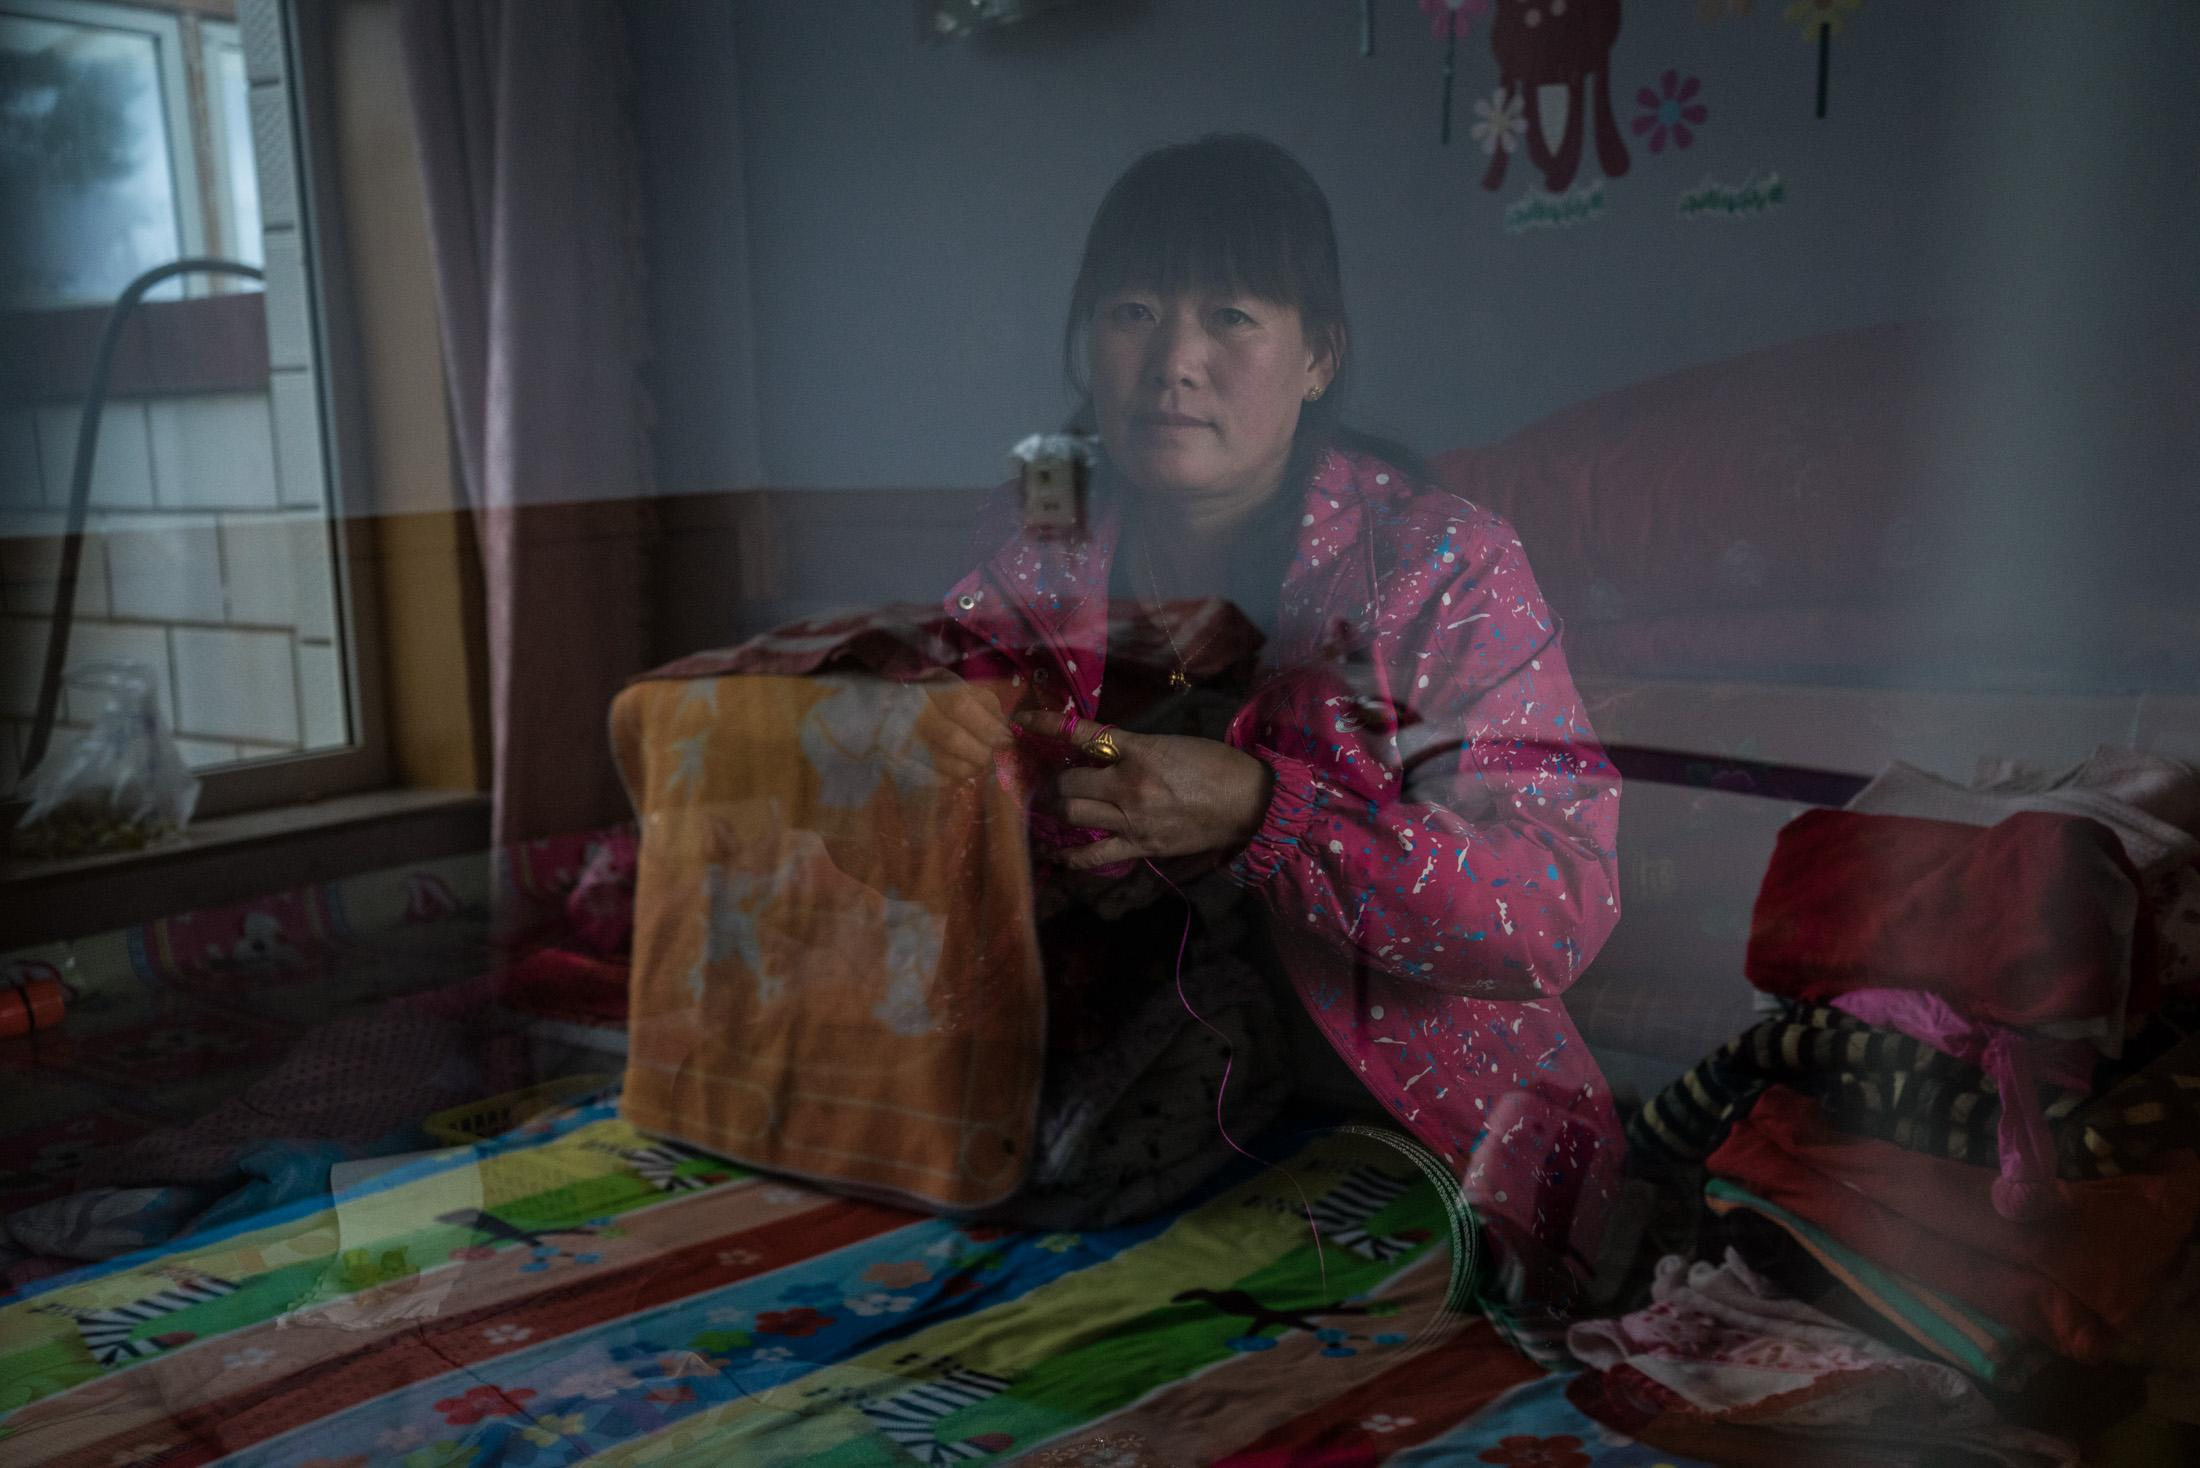 Hu Guihua sits in bed knitting at her home in Taizicheng village, Chongli, China, September 2015. The house has been demolished by the end of 2016. Hu is one of the villagers who later refuse to agree on the government's compensation, and take the case to court.